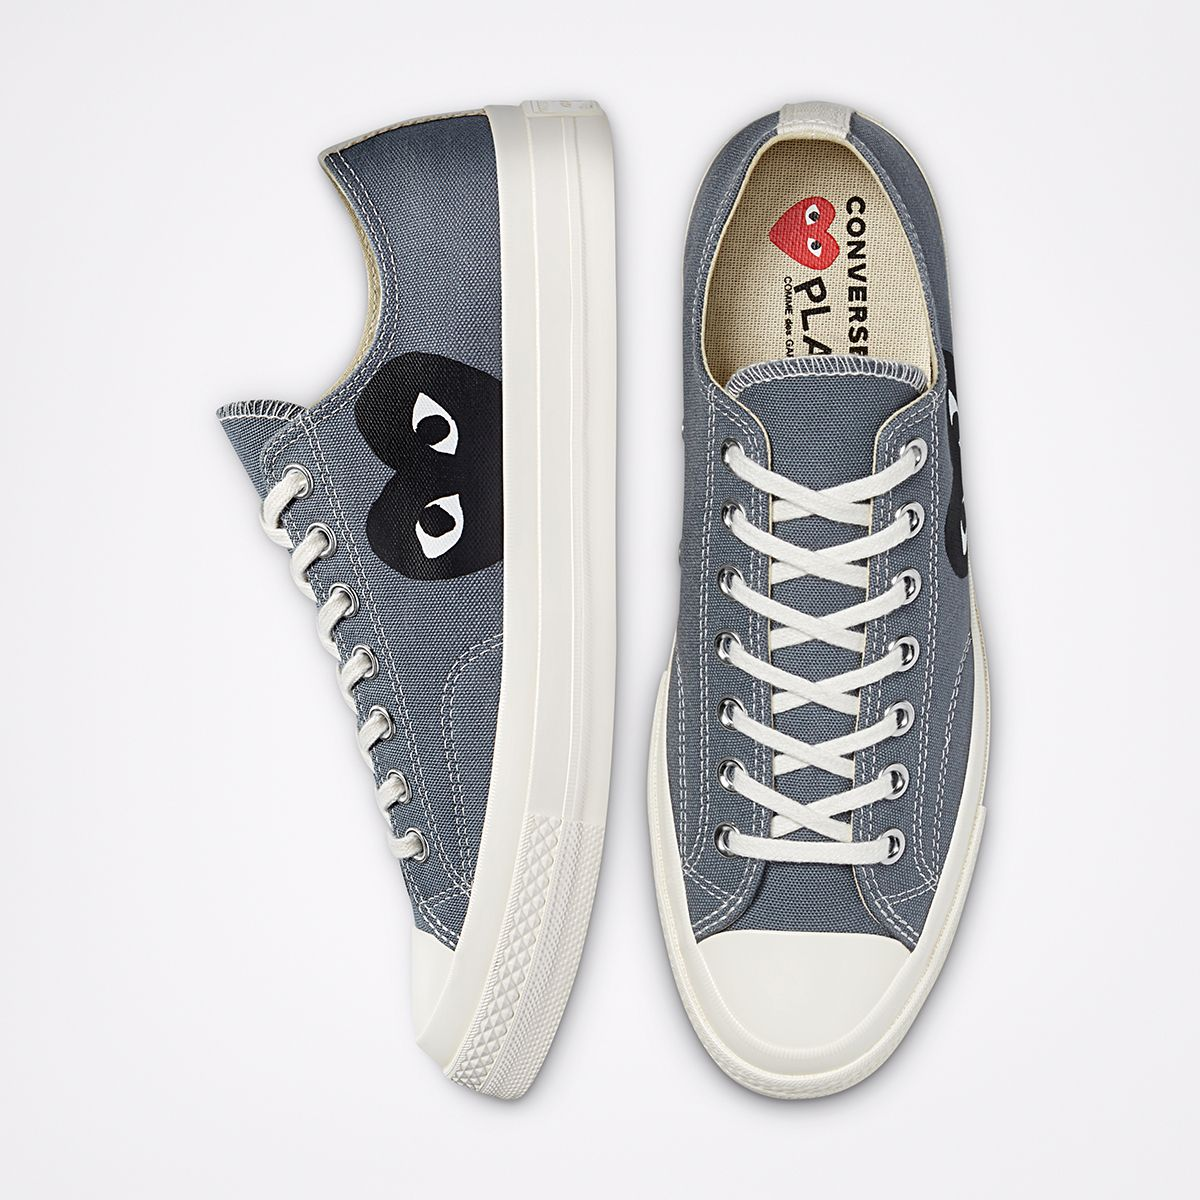 CdG PLAY Is Dropping Some New Chucks We Actually Want to Wear 51